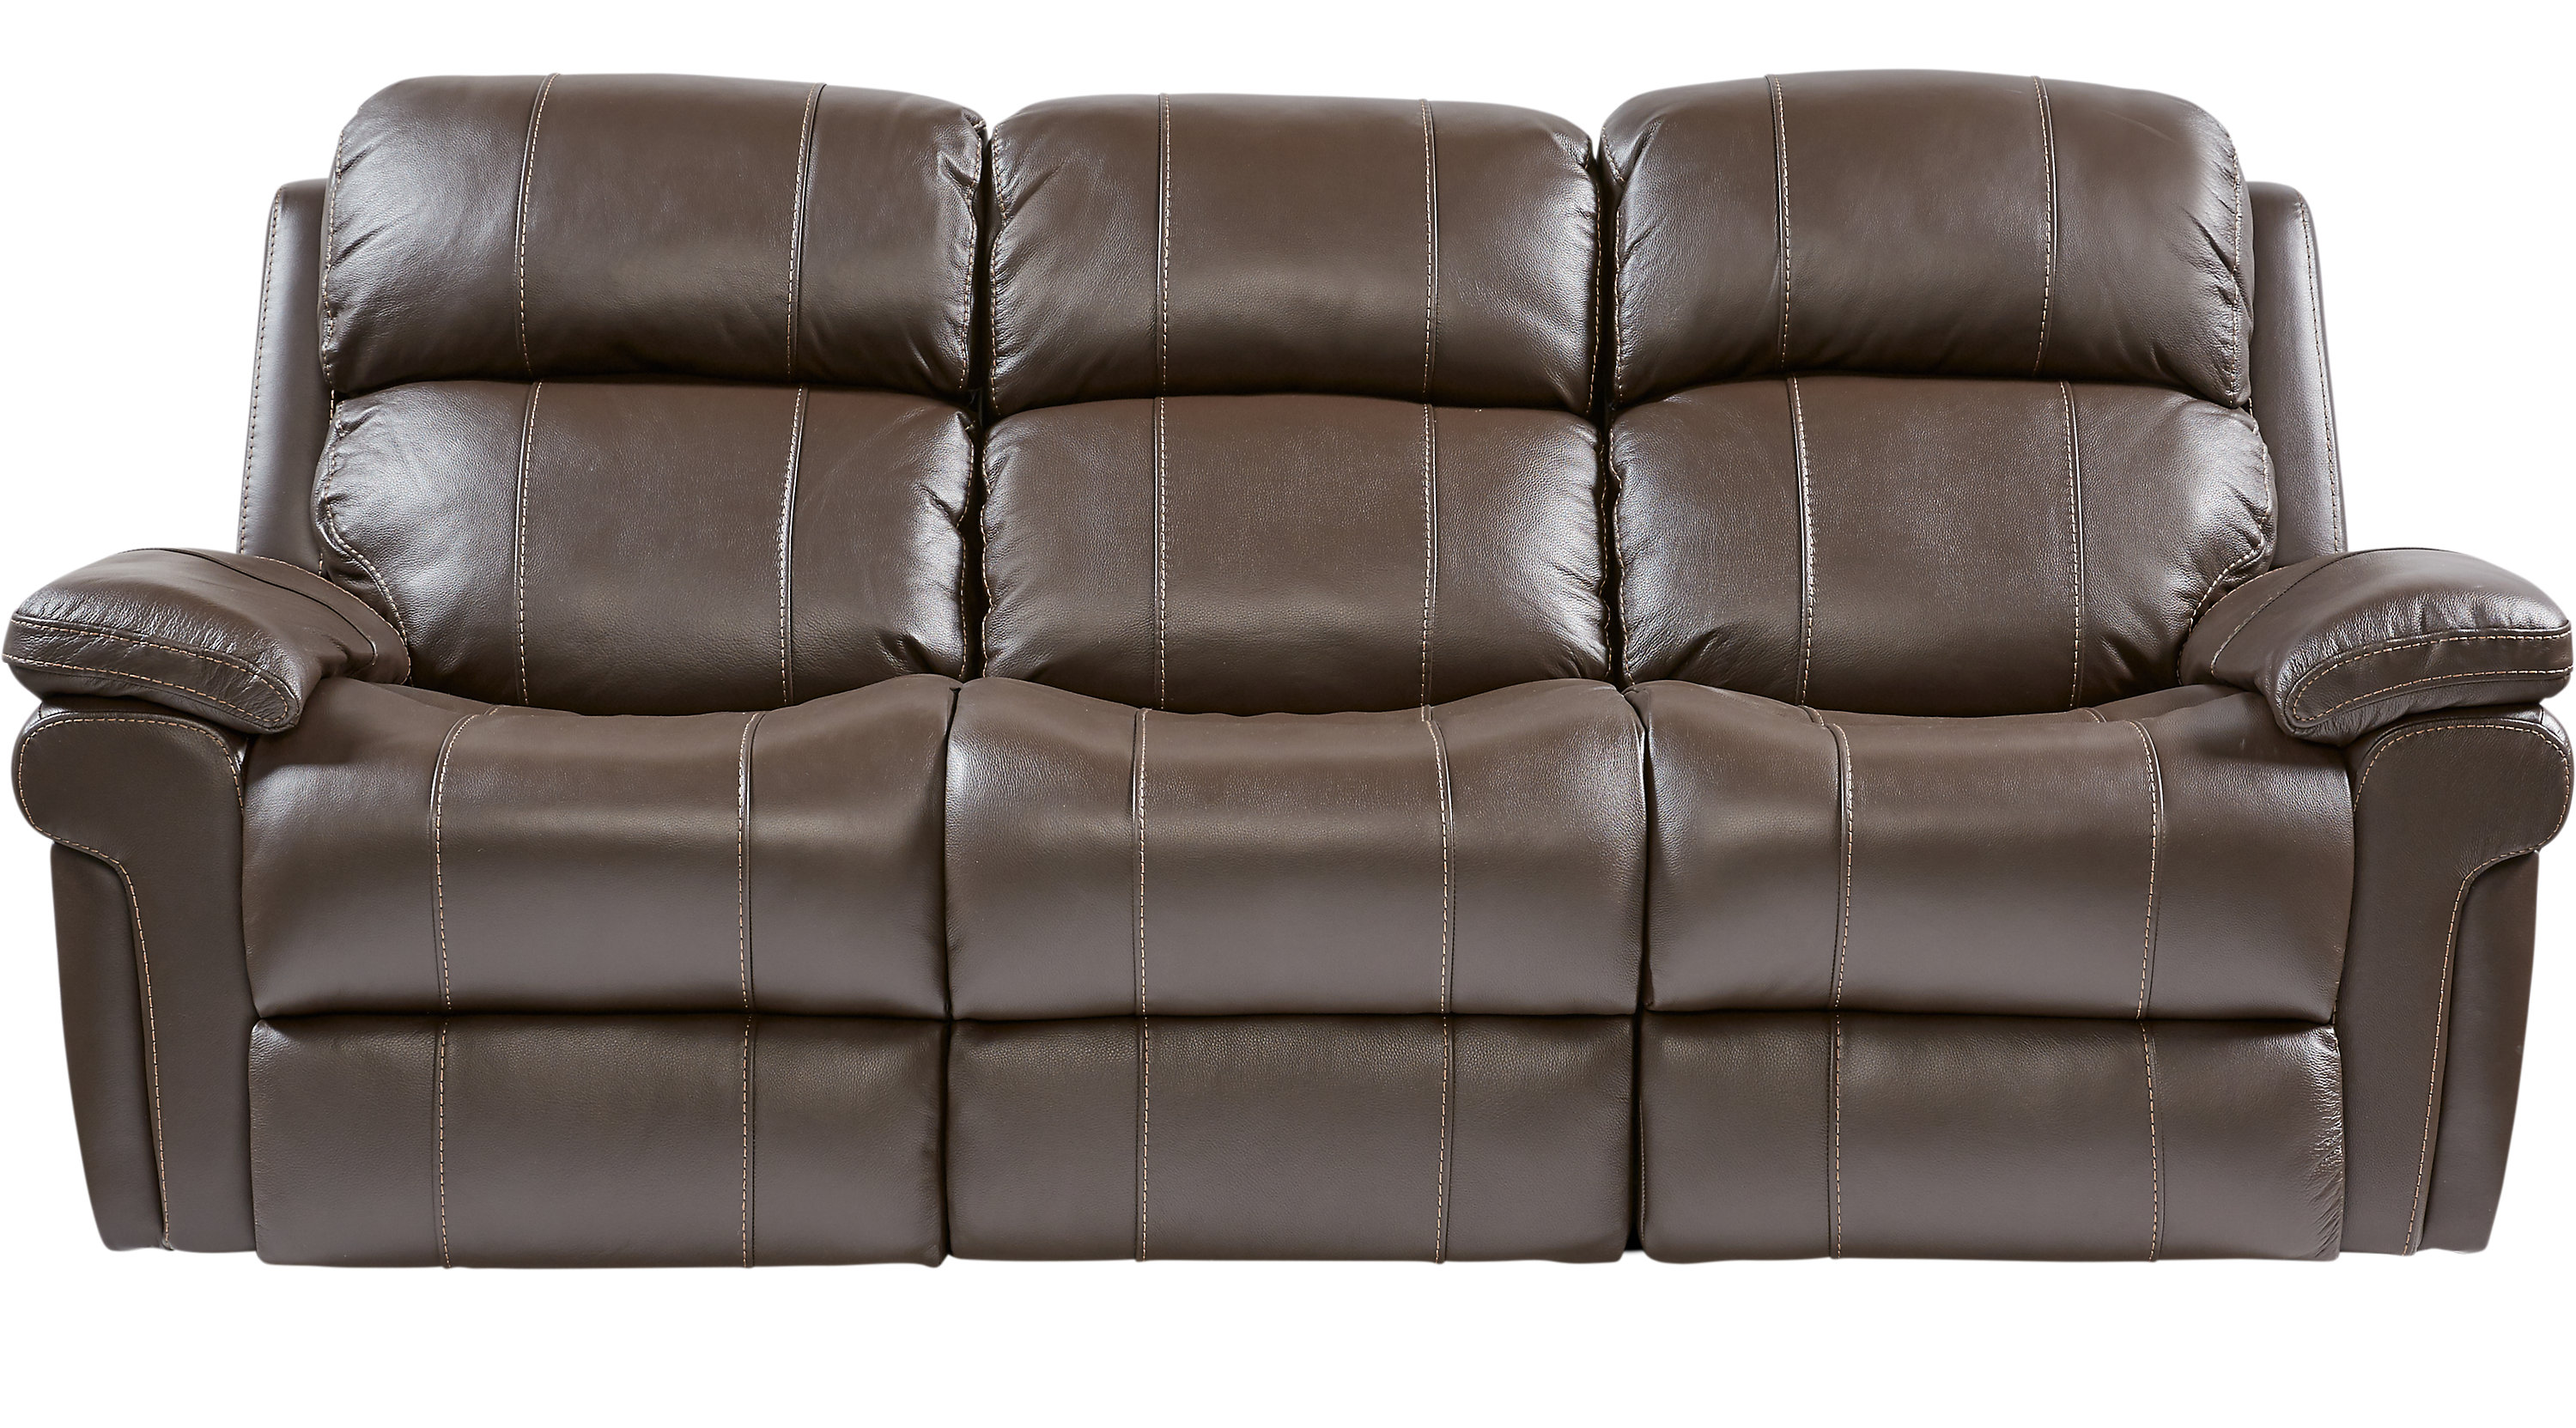 Trevino Chocolate Leather Power Reclining Sofa